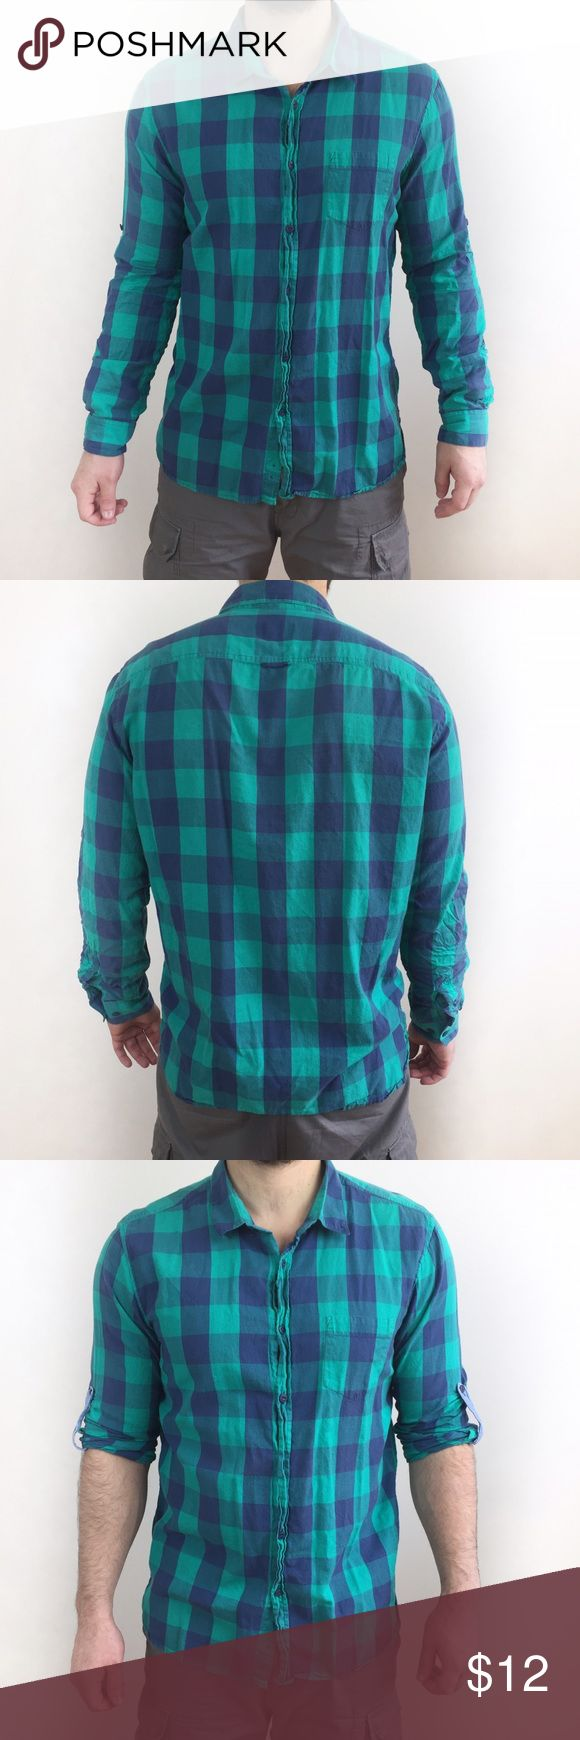 2x$15 PULL & BEAR ZARA PLAID SHIRT Pull and bear, Zara indicted sister company, plaid shirt in size XXL Europe, fits like a L USA. Used condition with look and feel of pre owned, no stains or holes. 1x$12 2x$15 Zara Shirts